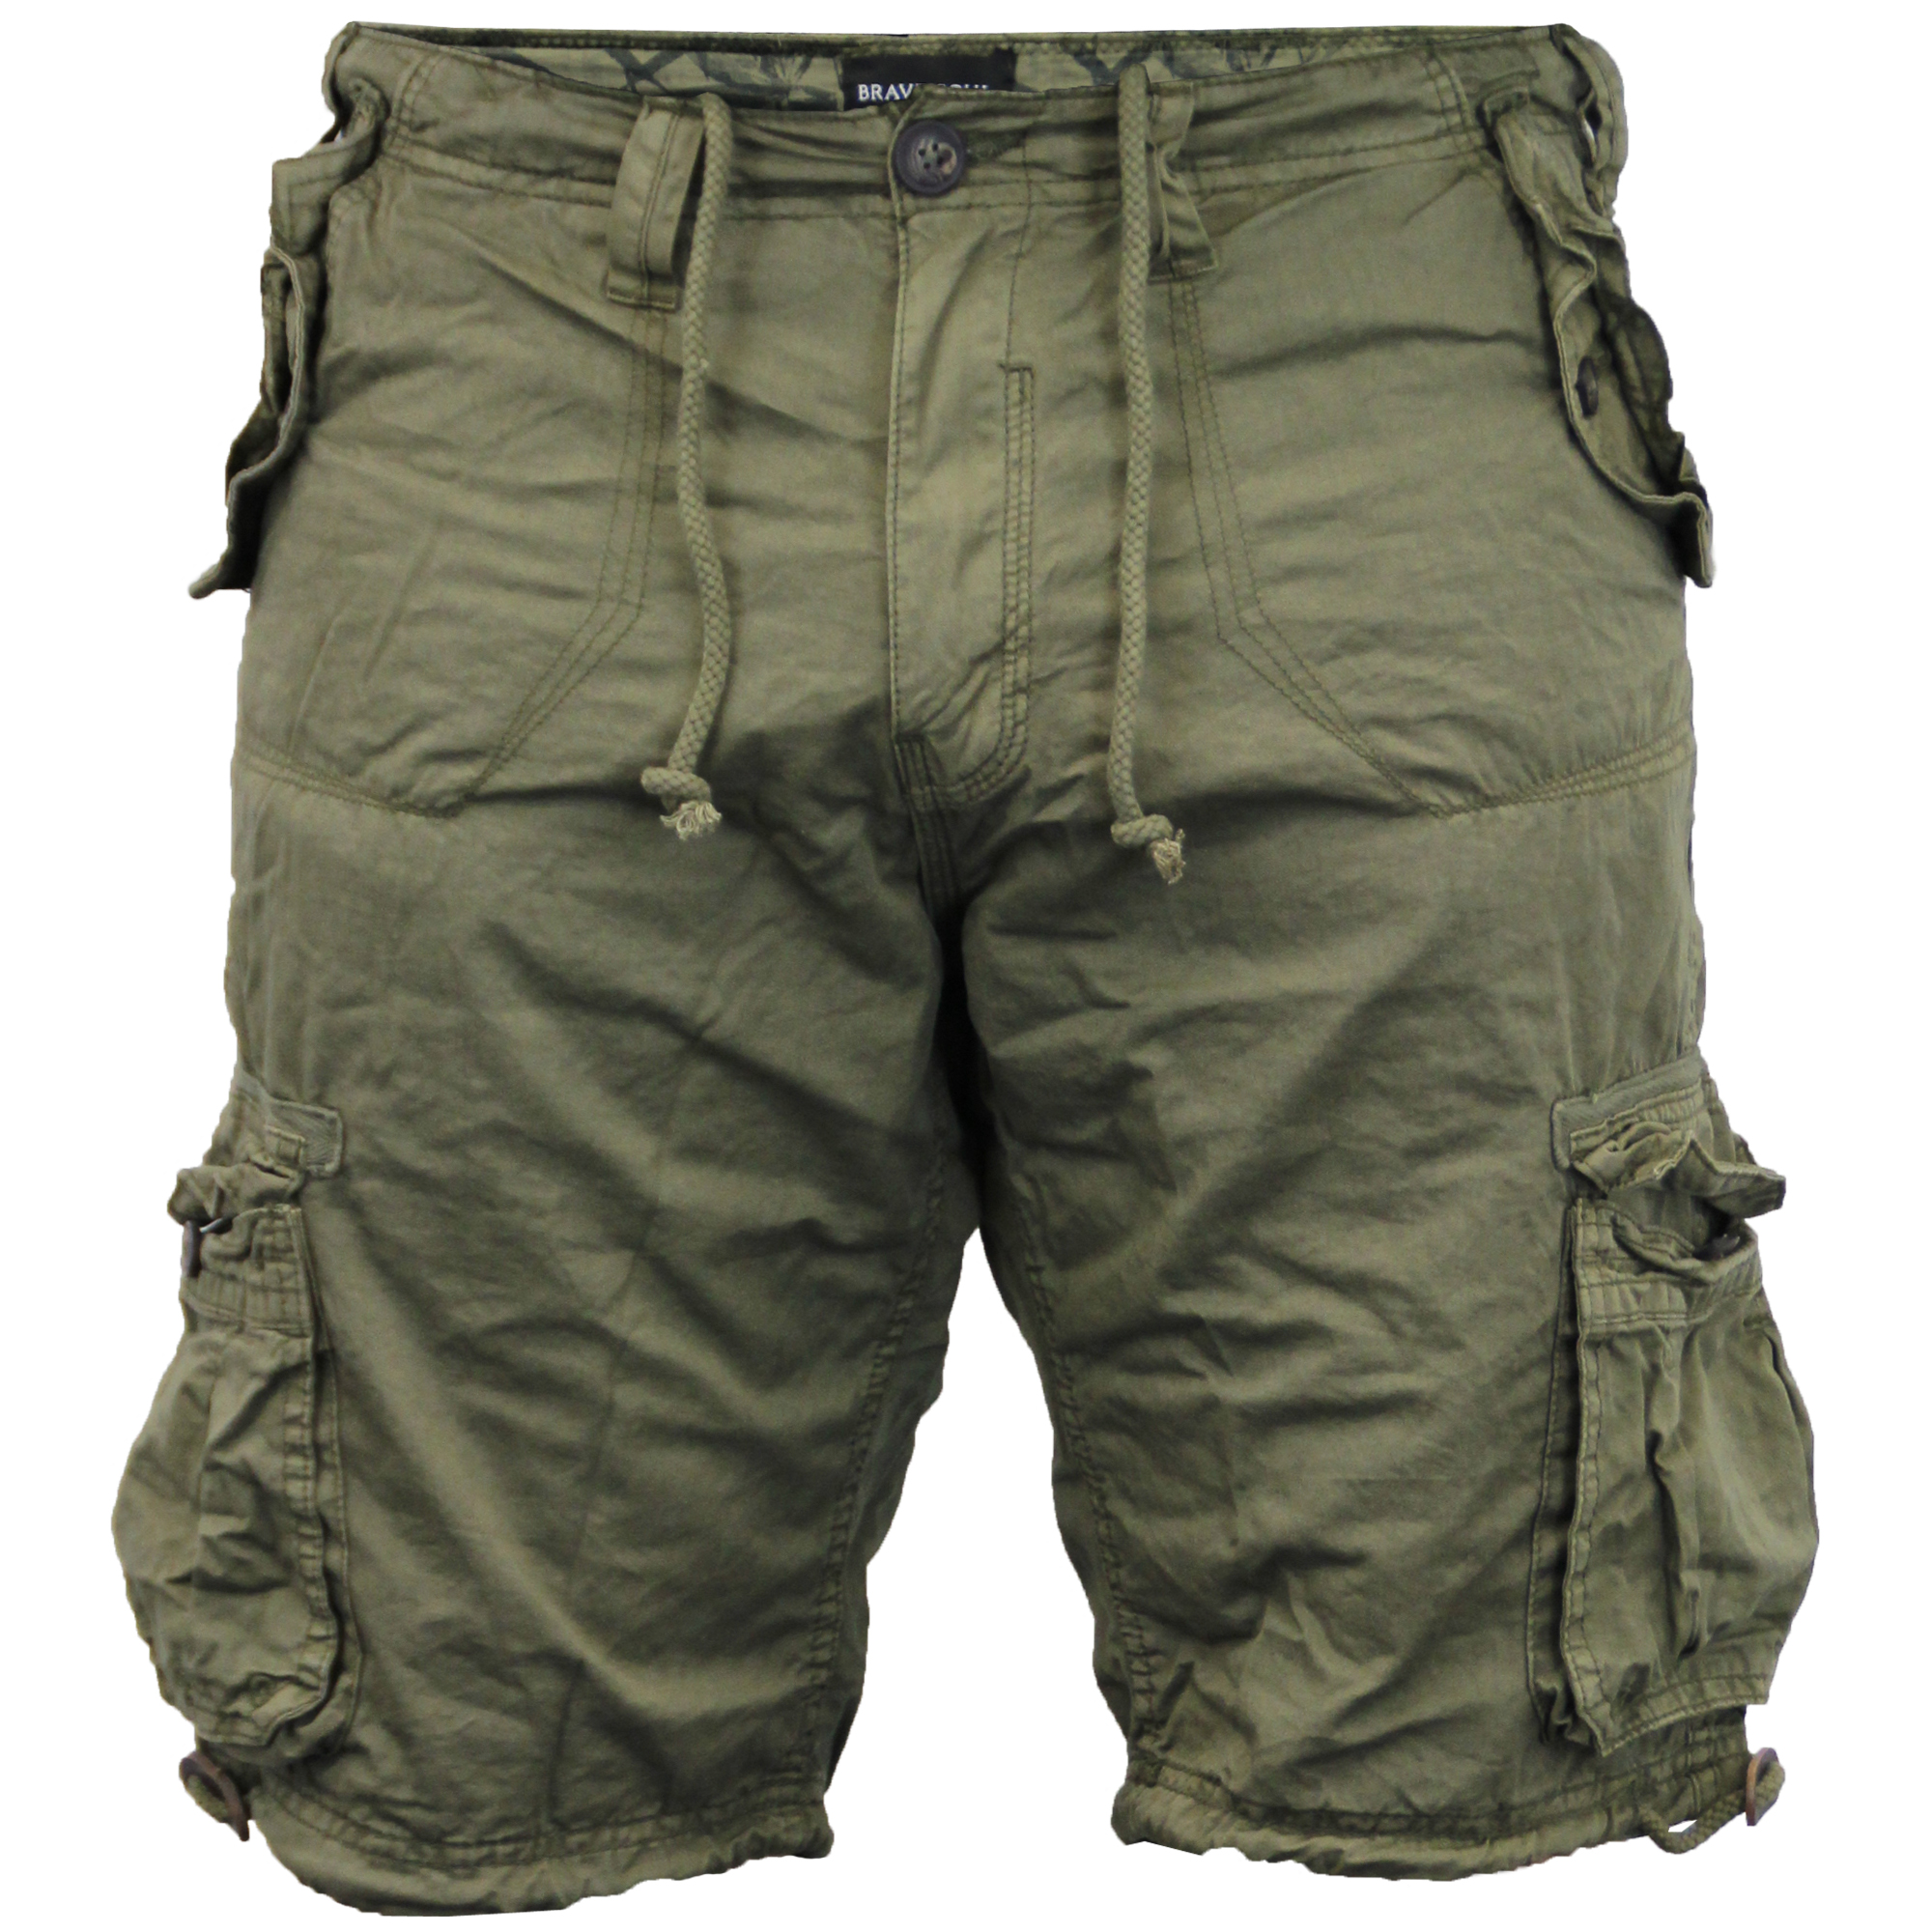 Find great deals on eBay for navy cargo shorts. Shop with confidence.